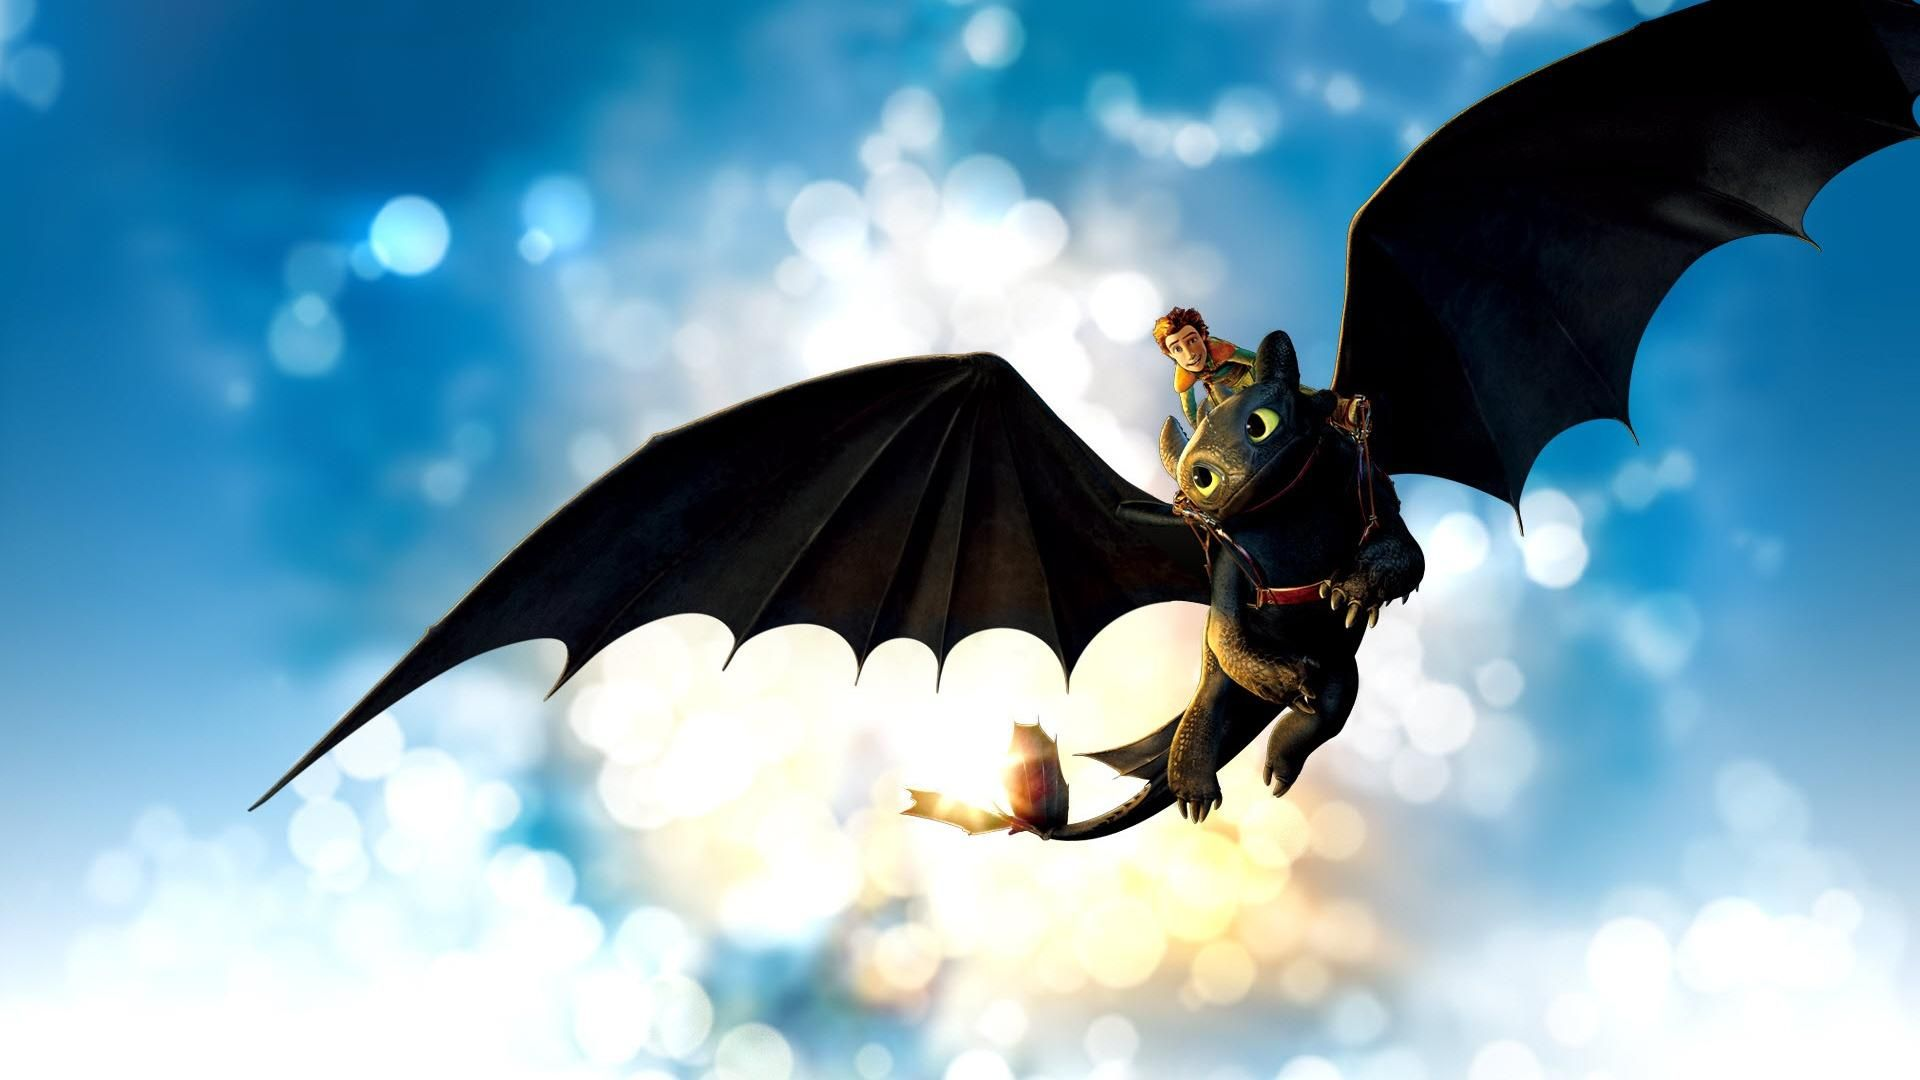 How To Train Your Dragon Wallpaper 1920x1080 How Train Your